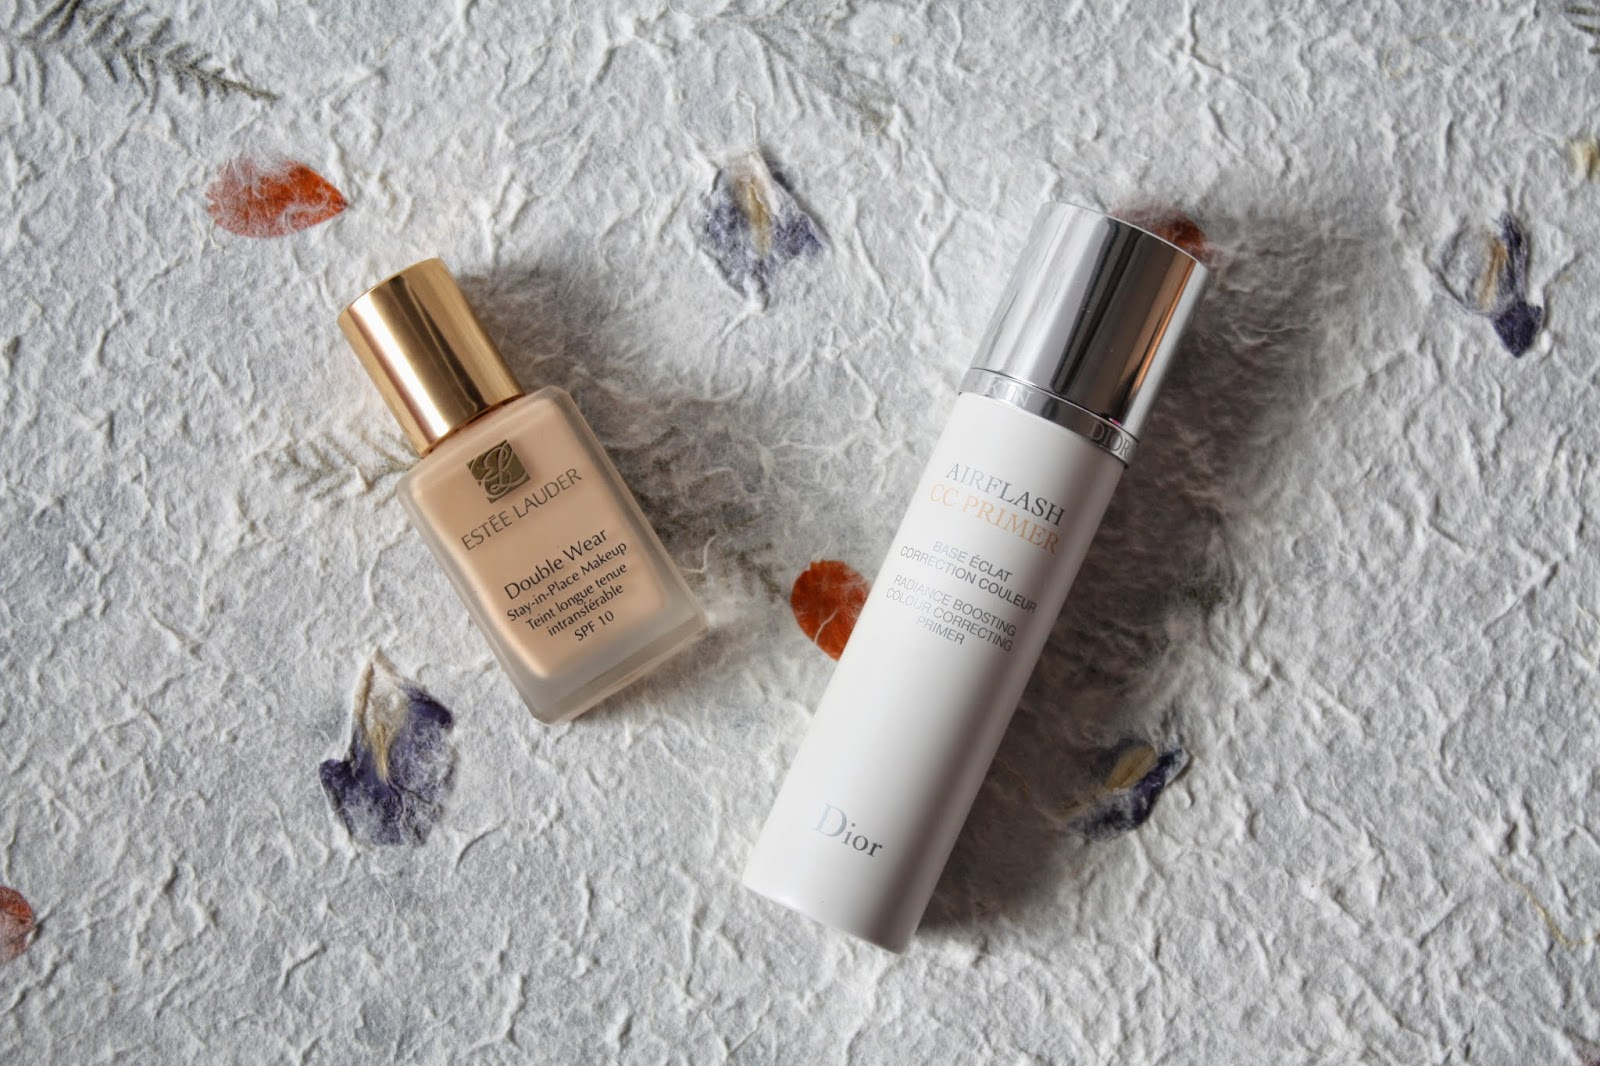 Estee Lauder Doublwear Foundation and Dior Airflash CC Primer